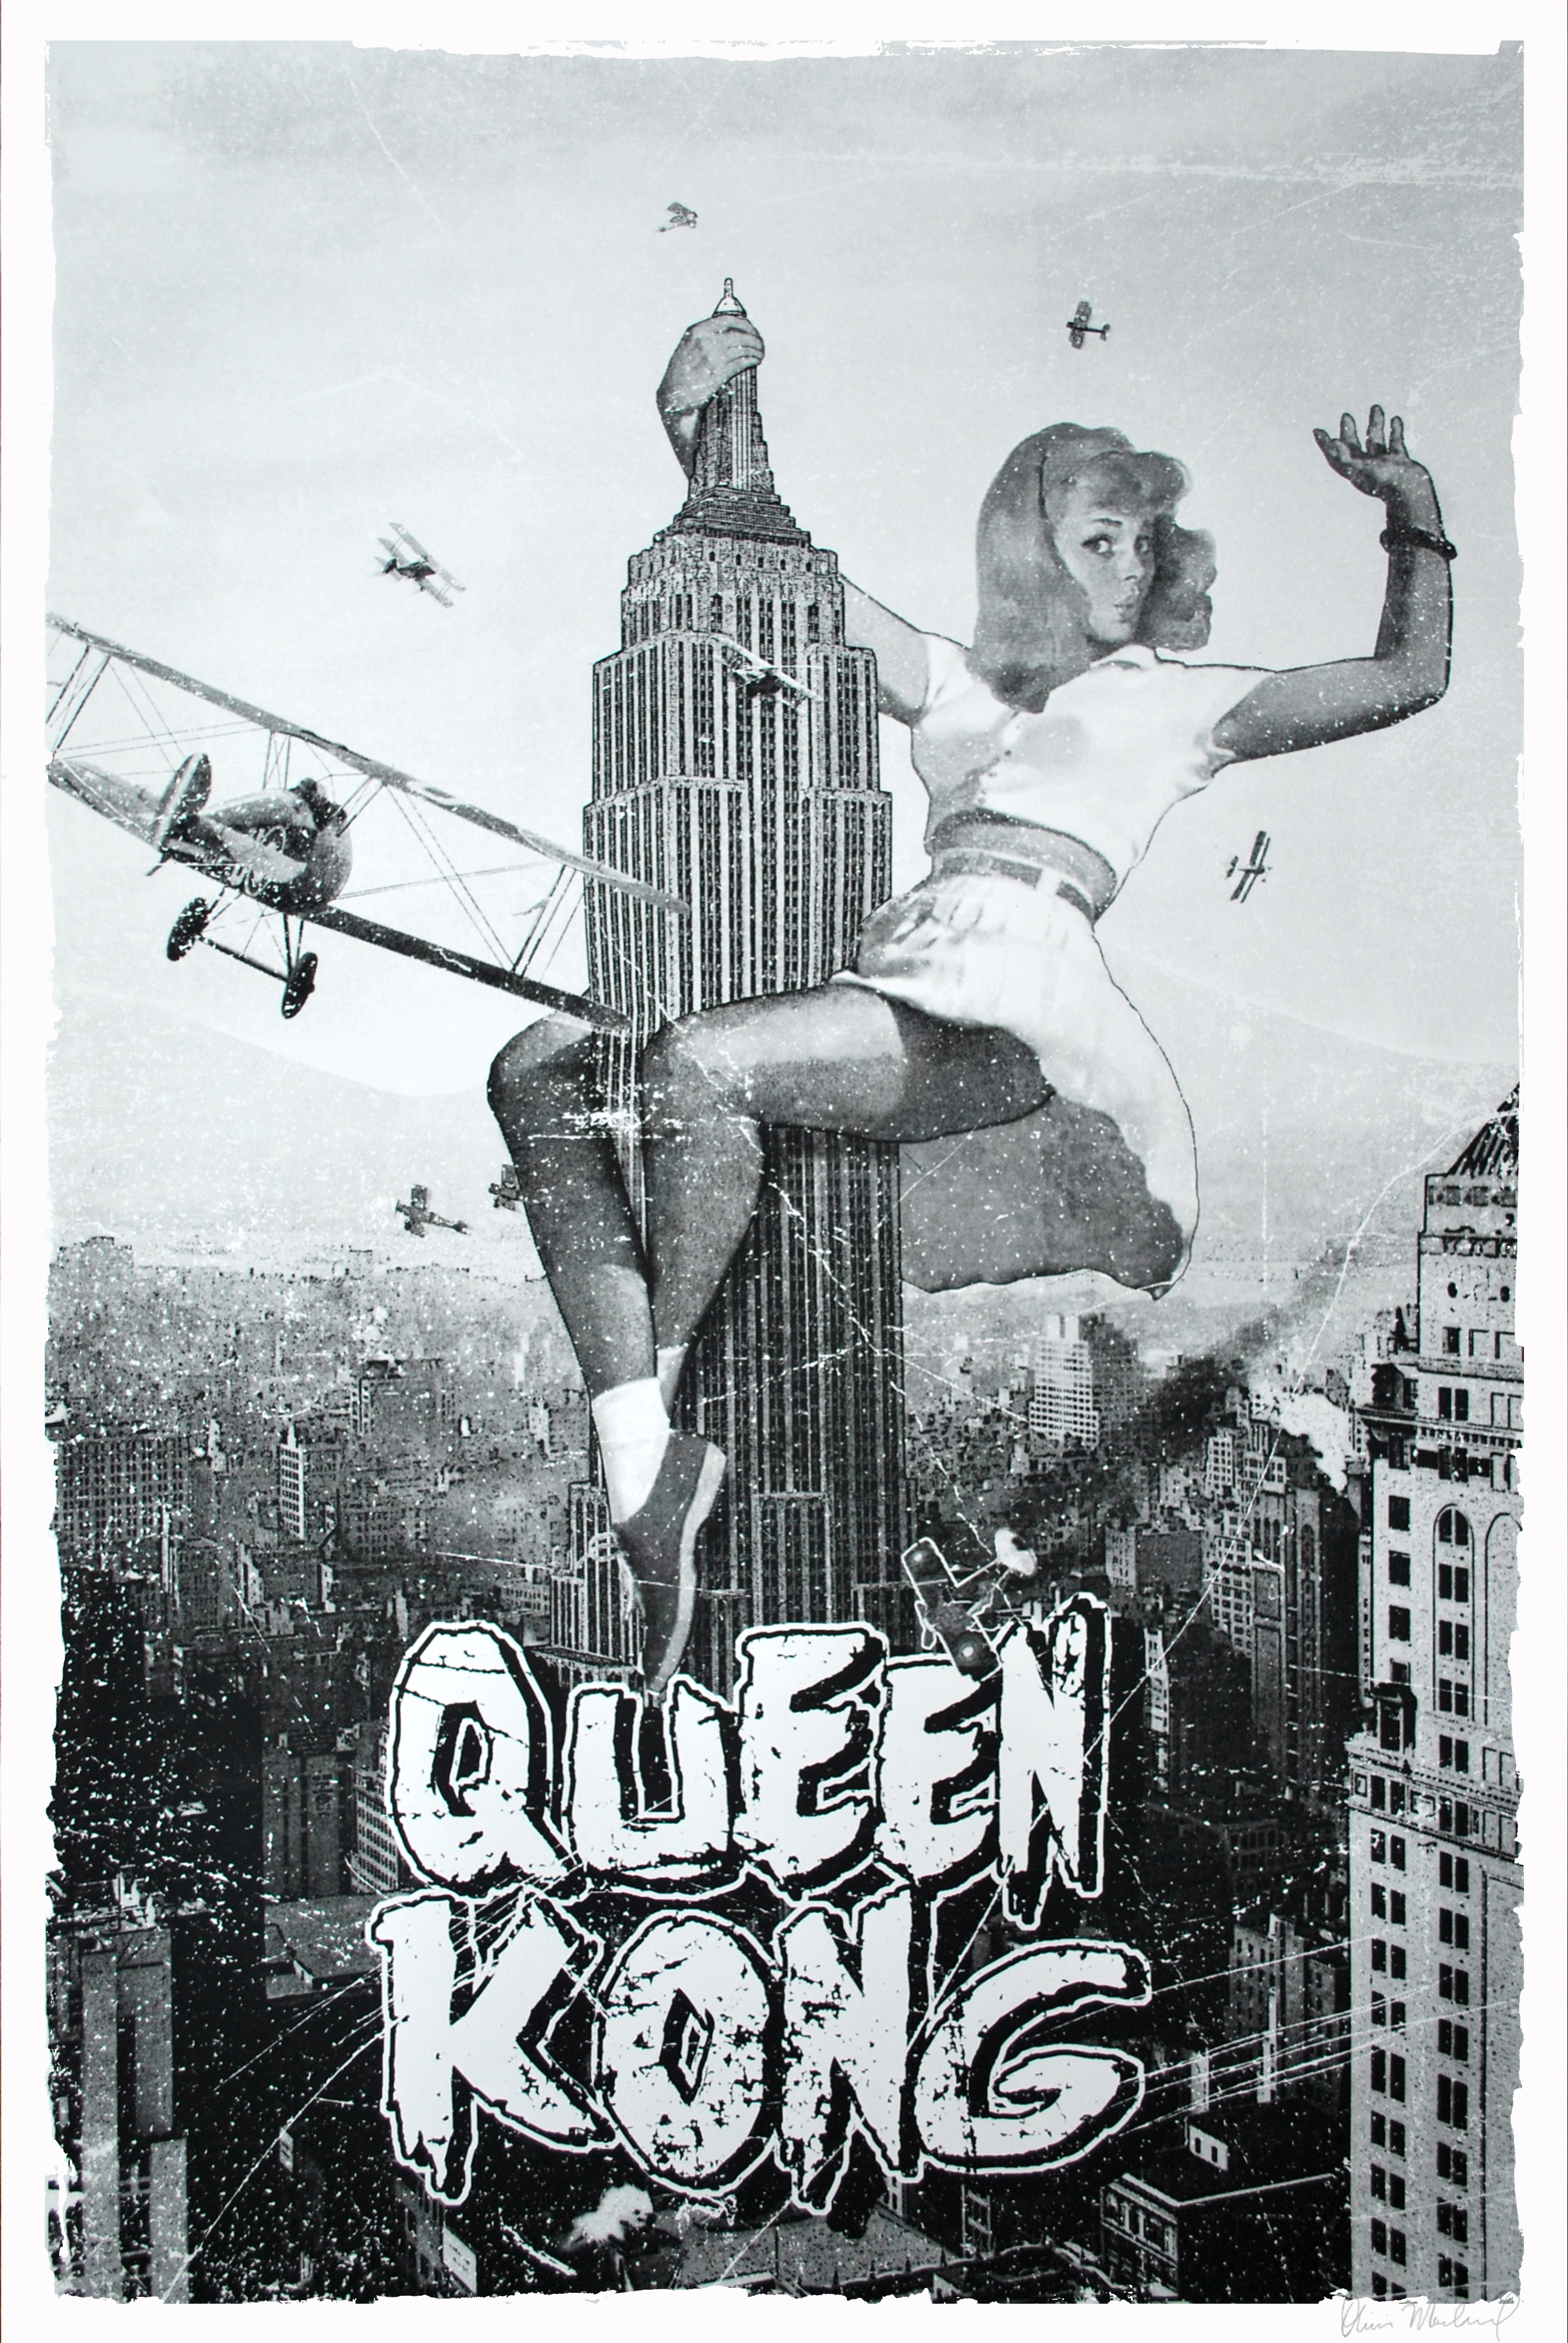 """Queen Kong"" by Olivier Marchand.  24"" x 36"" Screenprint.  Ed of 1 S/N.  $200 (B&W variant)"